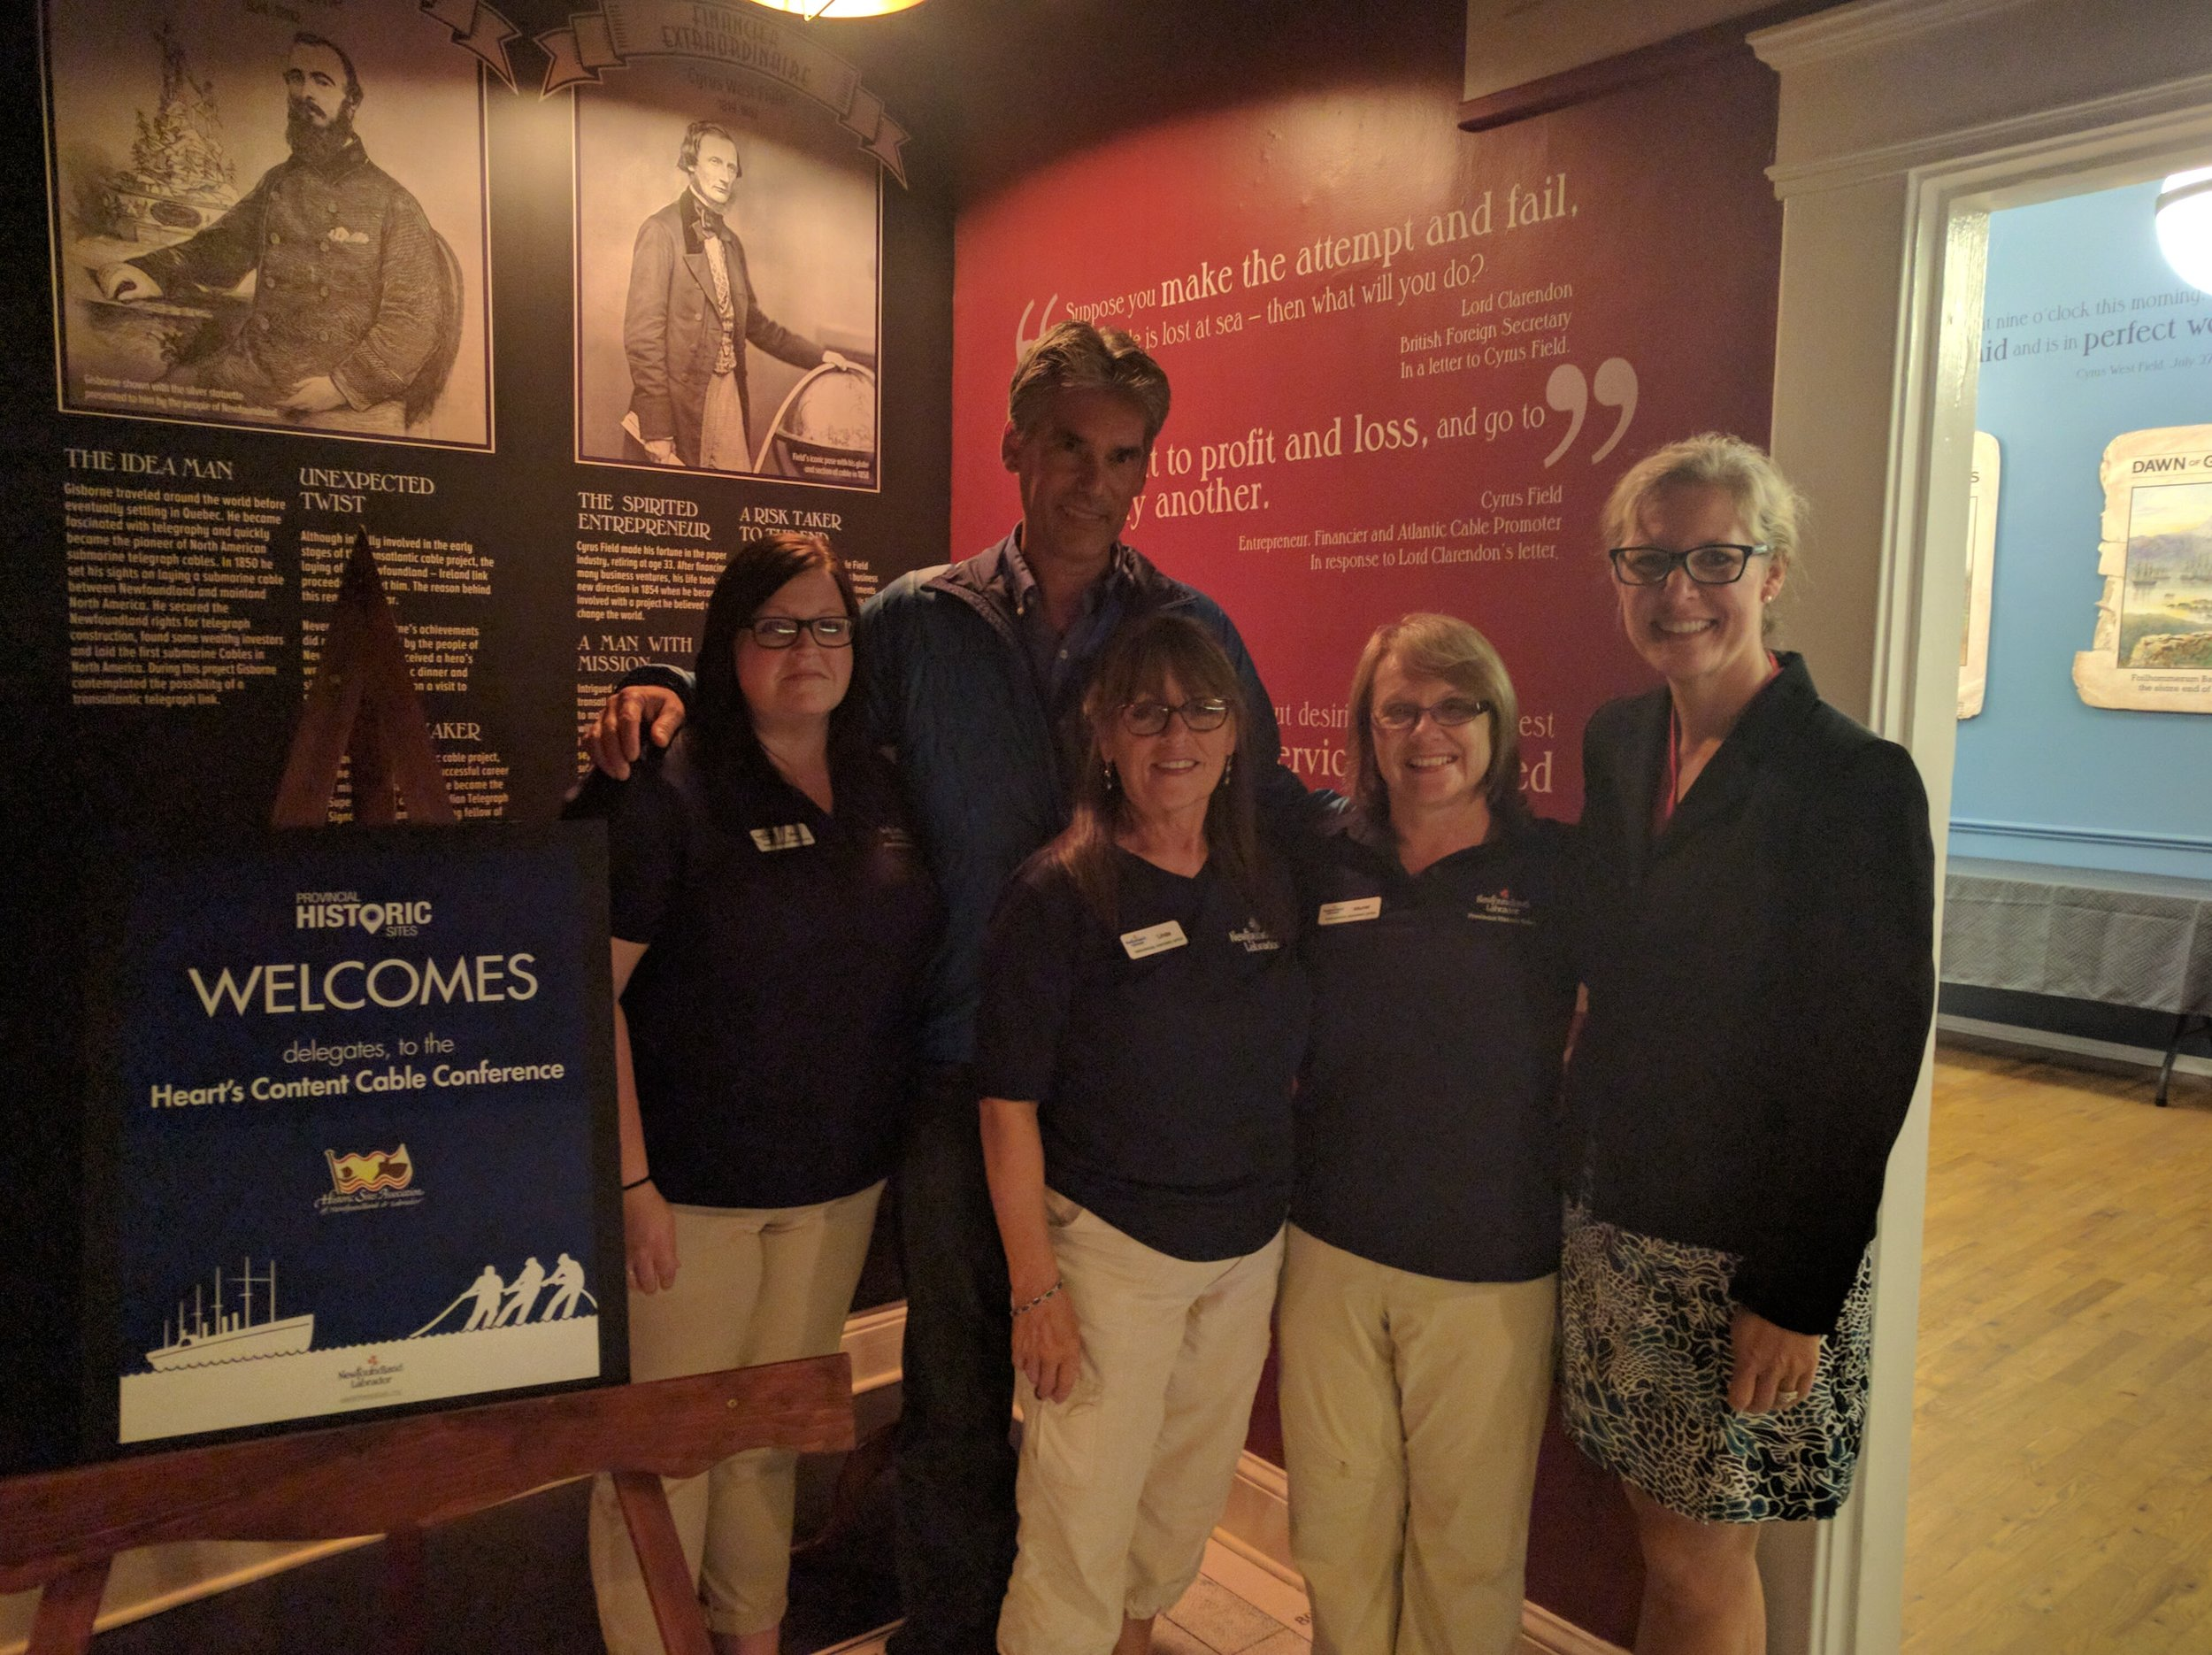 Provincial Historic Sites hosted our conference reception at the Cable Station Museum. Here's the great PHS team pictured with Cyrus Field IV and his wife, Stephanie Buffum.